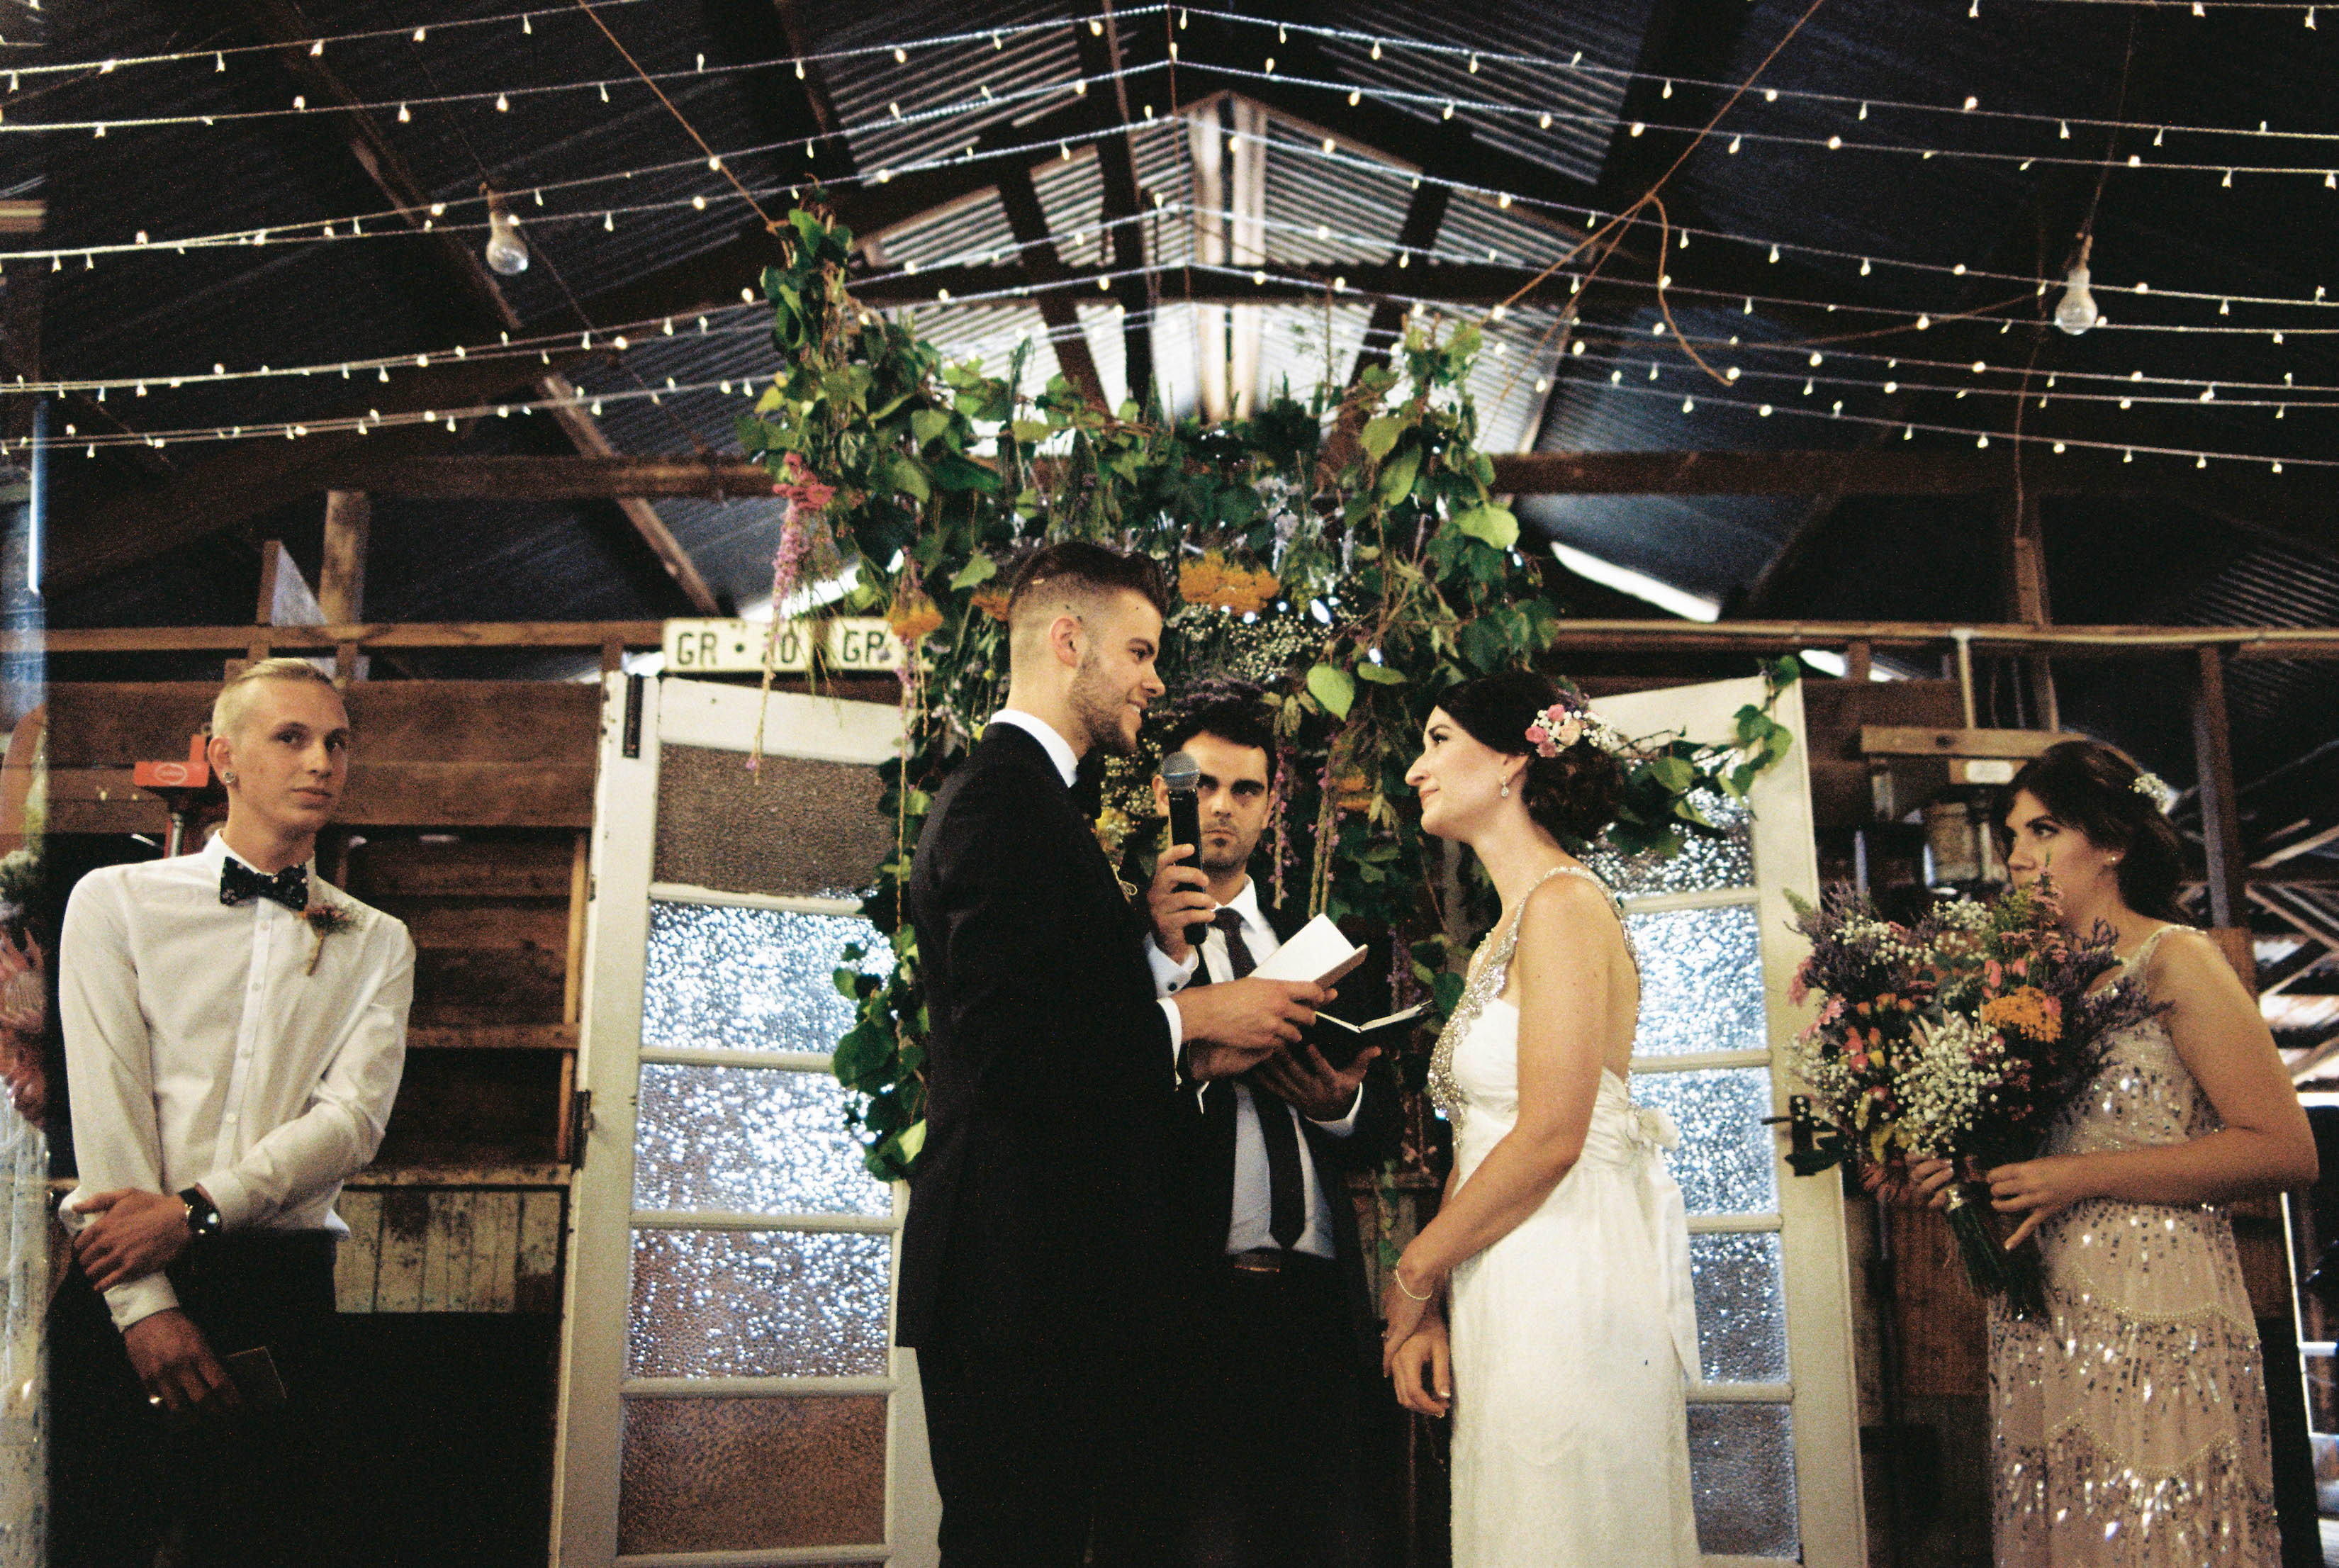 The groom and bride exchange vows, photographed on 35mm film by Australian and Italian Destination Wedding Photographer, Rhianna May